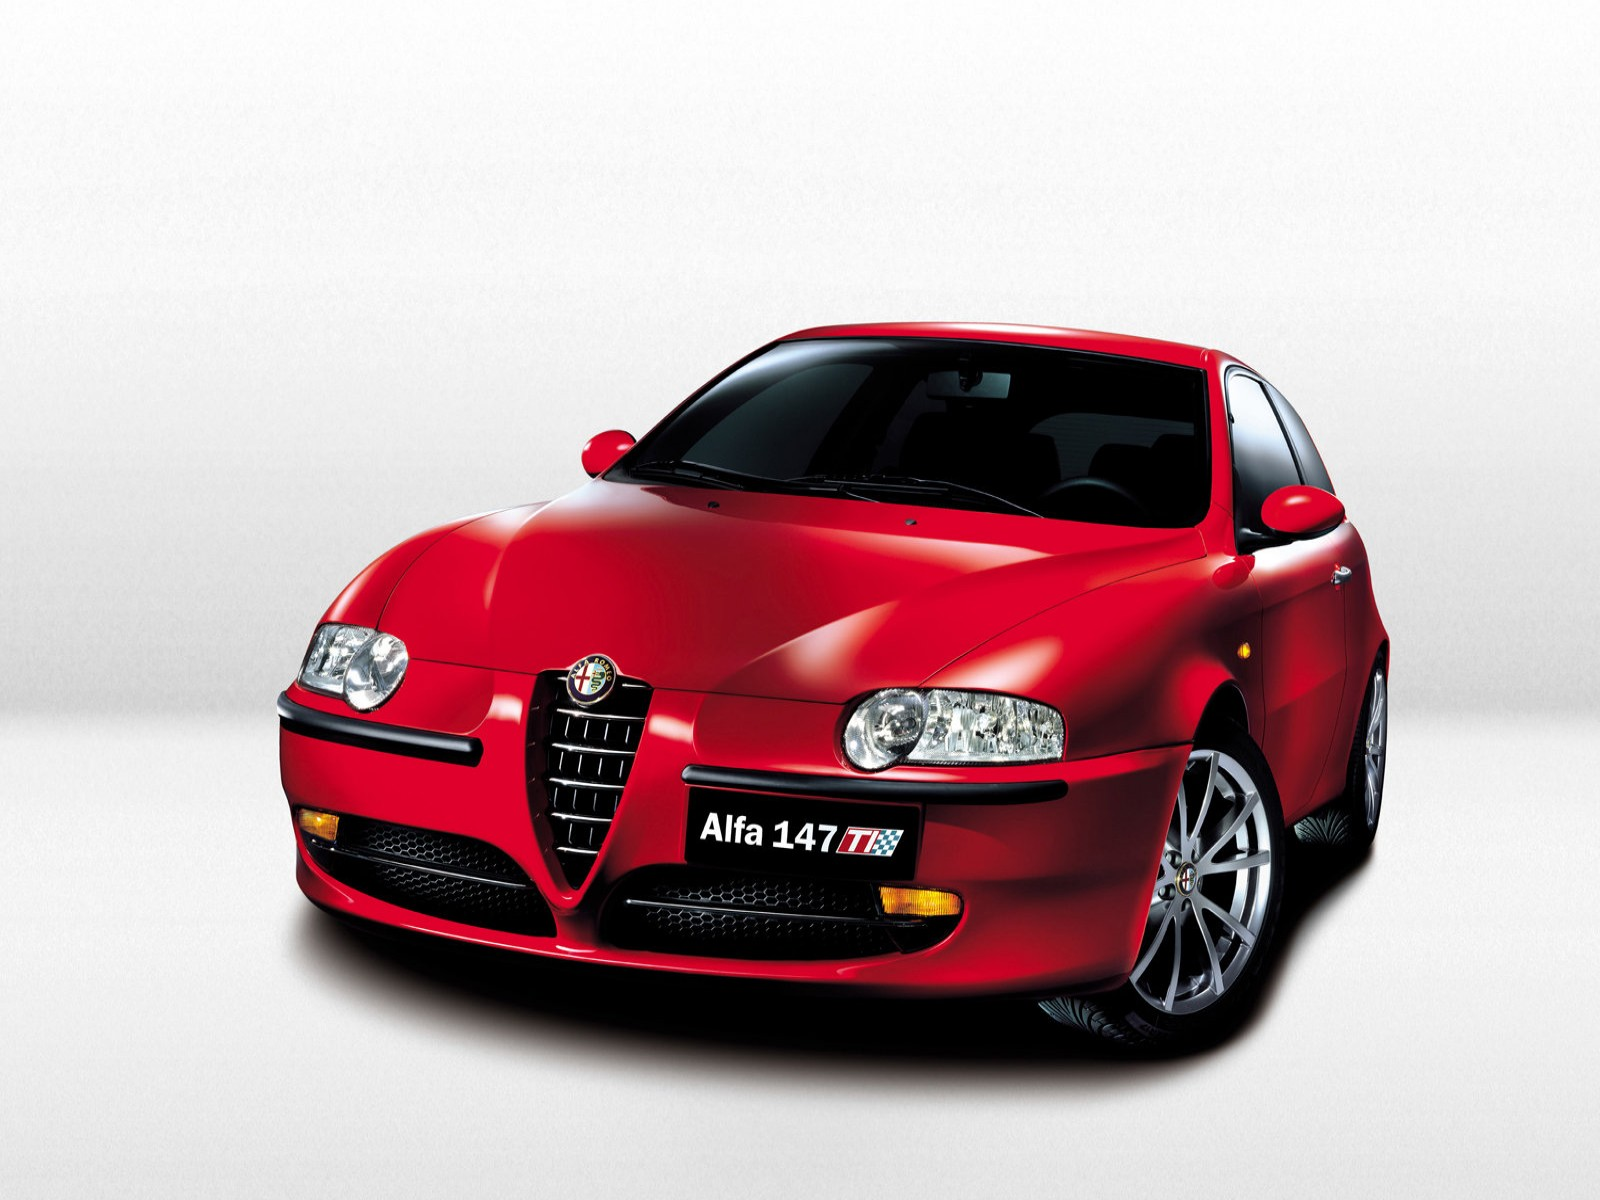 http://3.bp.blogspot.com/-qHNZOlNjOfM/Tc-7exhxRhI/AAAAAAAAAK8/qukjcRp-Lig/s1600/2003+Alfa+Romeo+147+TI+-+Car+Photo+Wallpaper.jpg